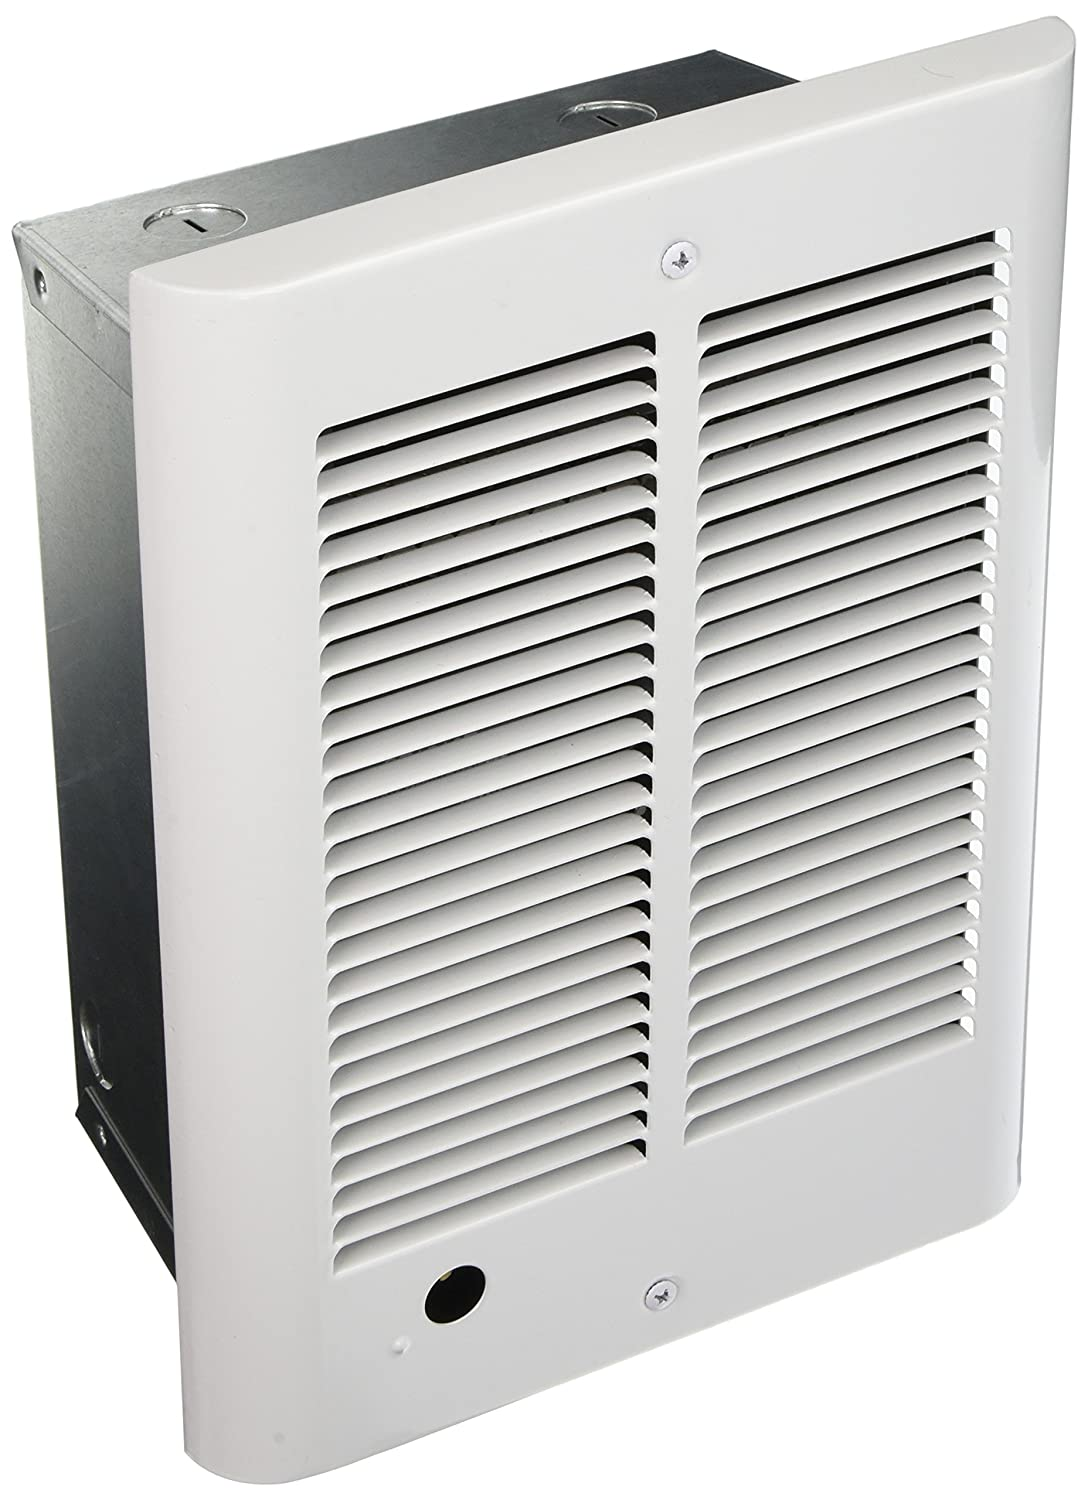 Bathroom Wall Heater 120v - Qmark cz1512t residential fan force zonal heater small northern white amazon com